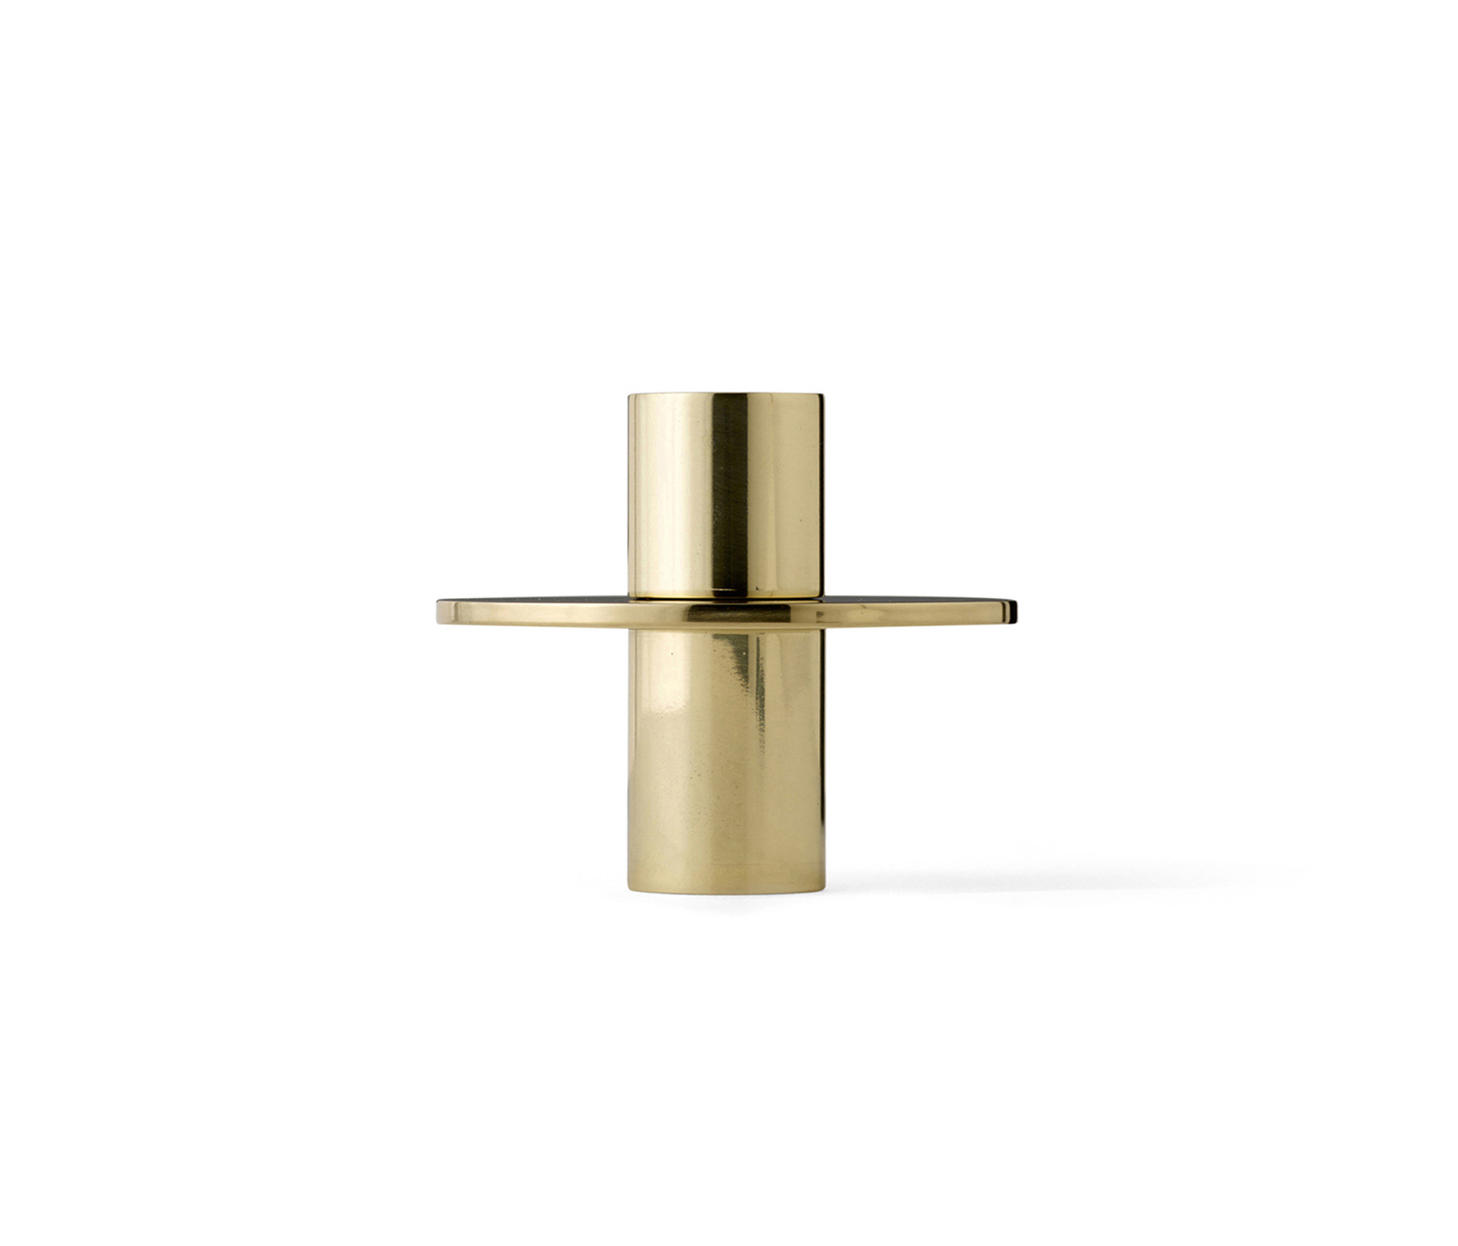 Antipode Candle Holder 01 Mirror Polished Brass By Candlesticks Candleholder